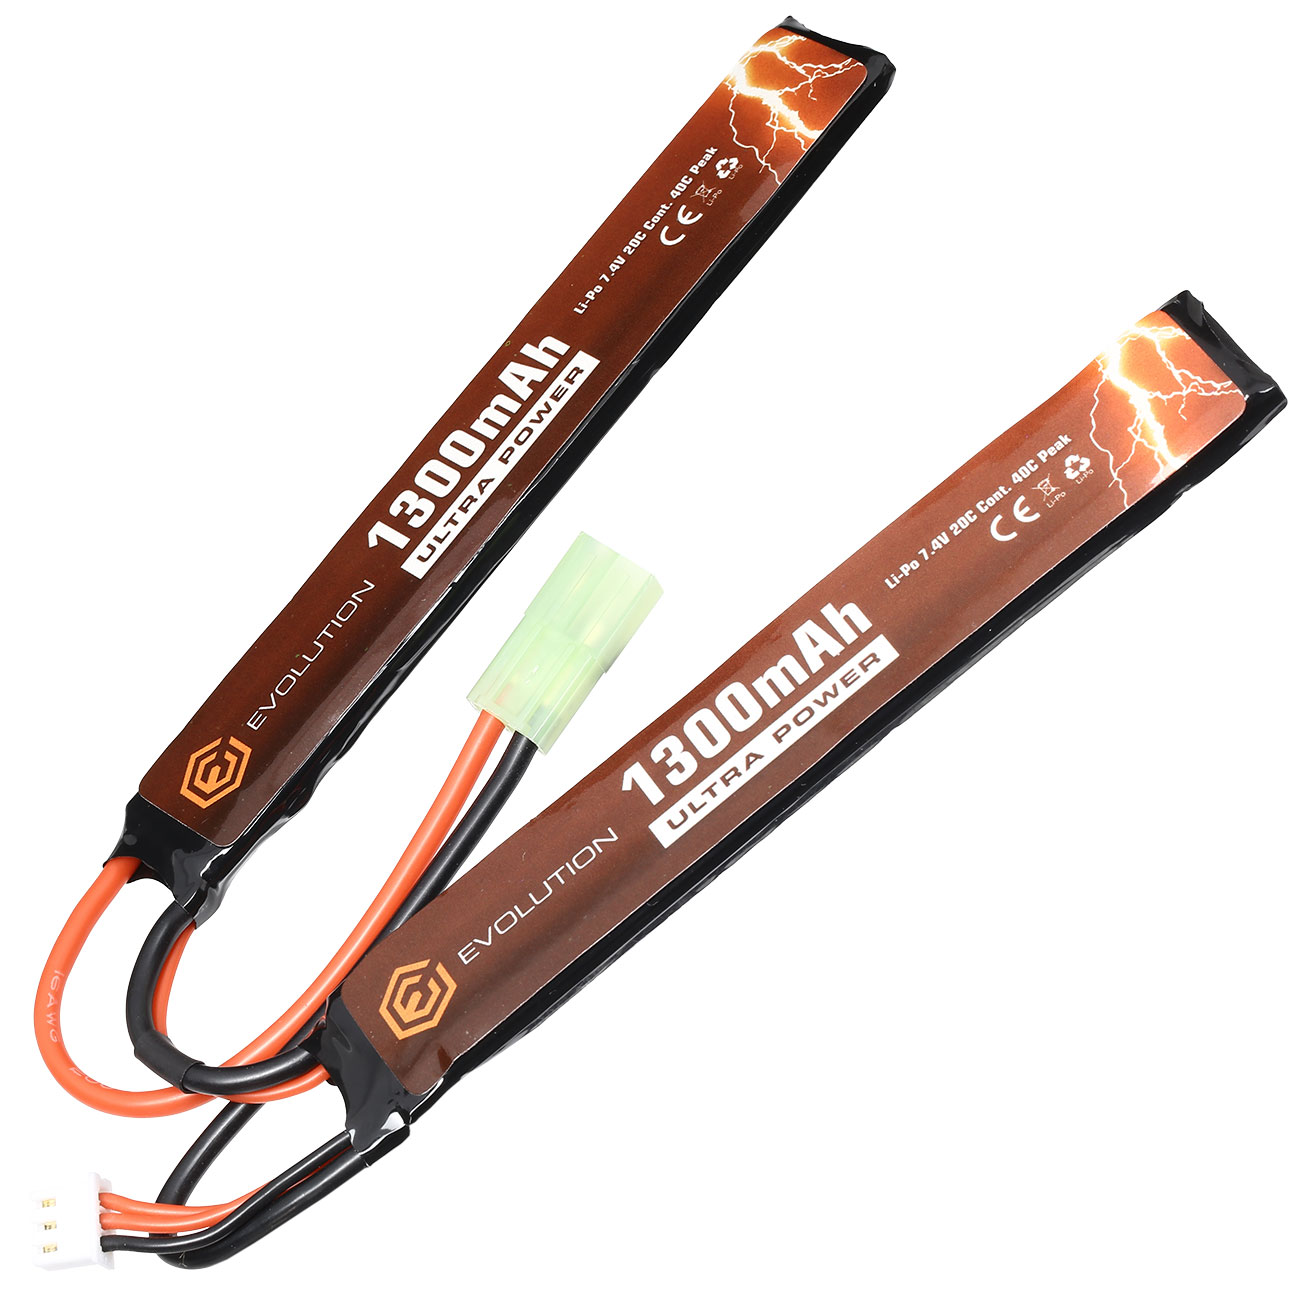 Evolution Ultra-Power LiPo Akku 7,4V 1300mAh 20C / 40C Small-Long Tri-Panel Type m. Mini-Tam Anschluss 0